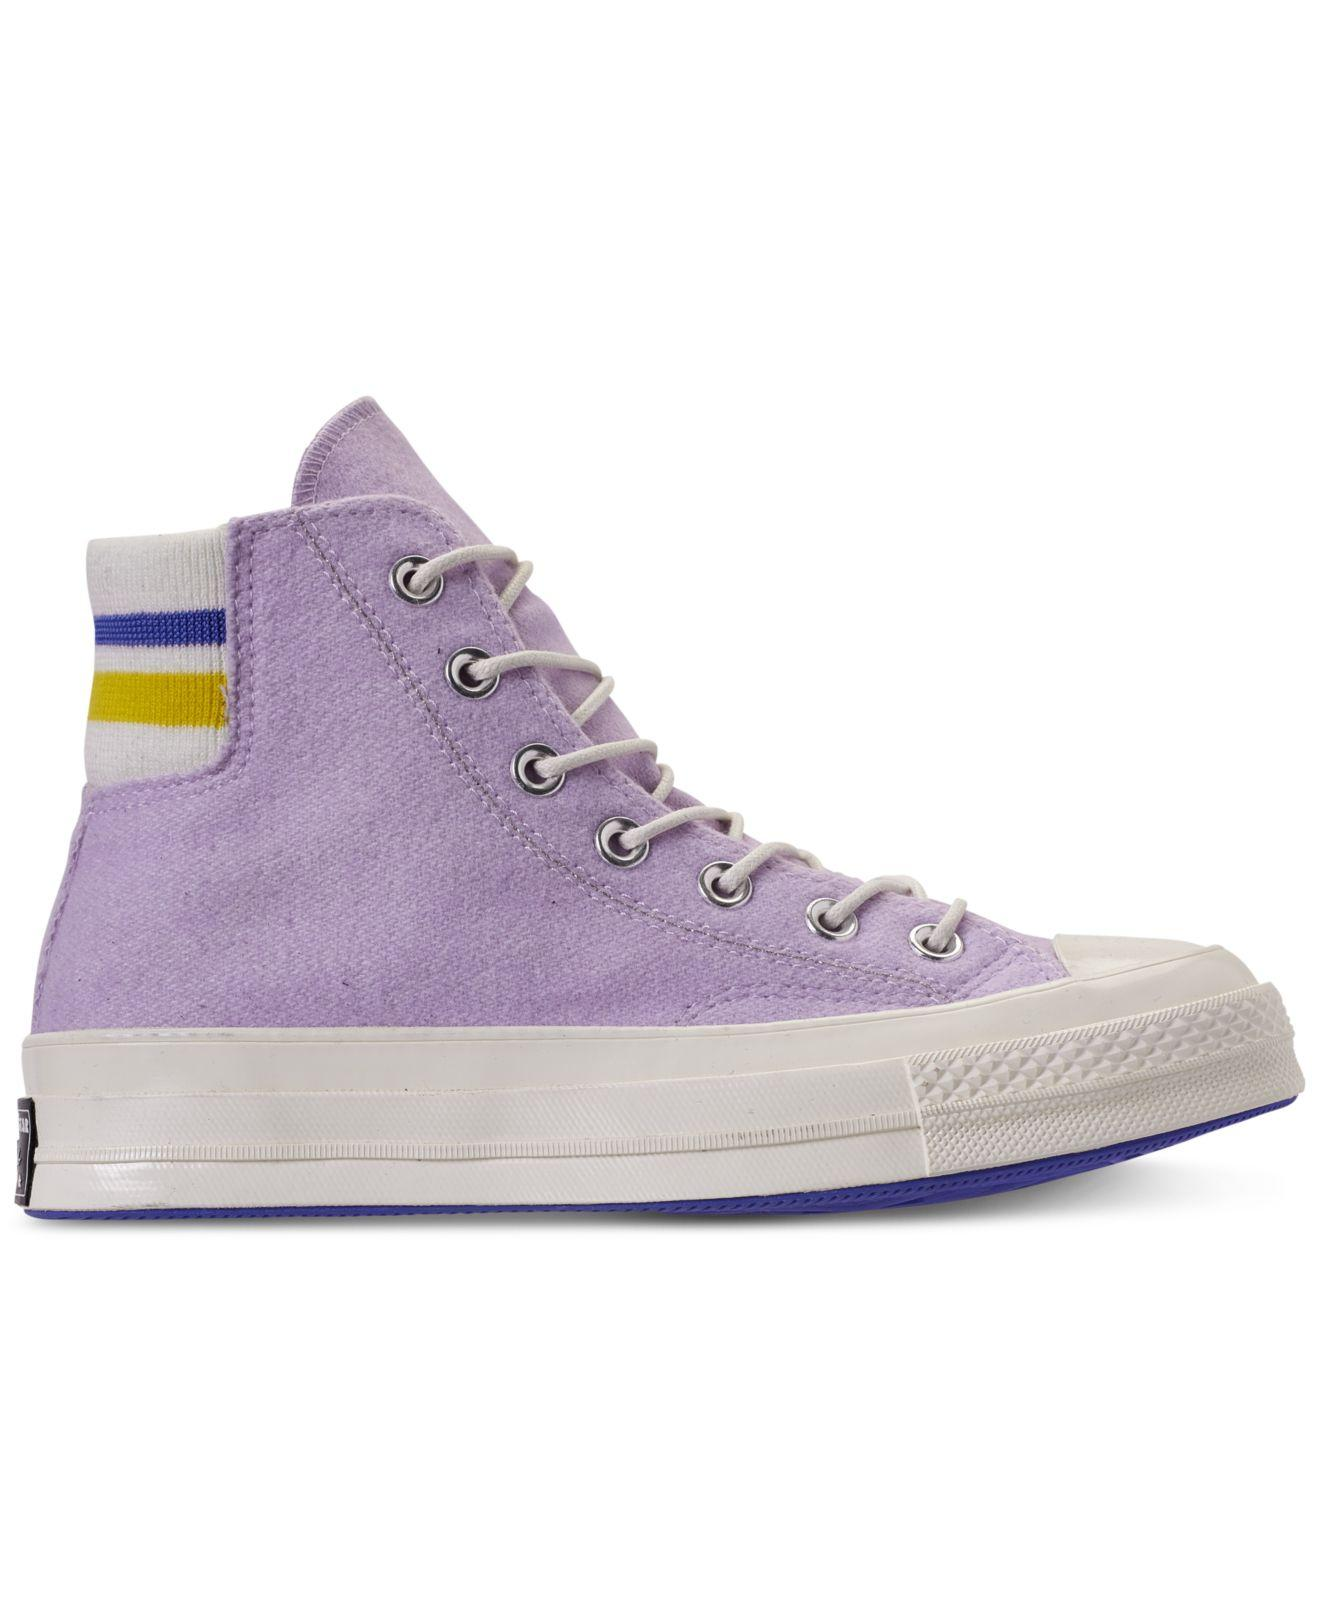 1a92afd7e3d98 ... spain lyst converse chuck taylor all star 70 high top casual sneakers  from finish line in